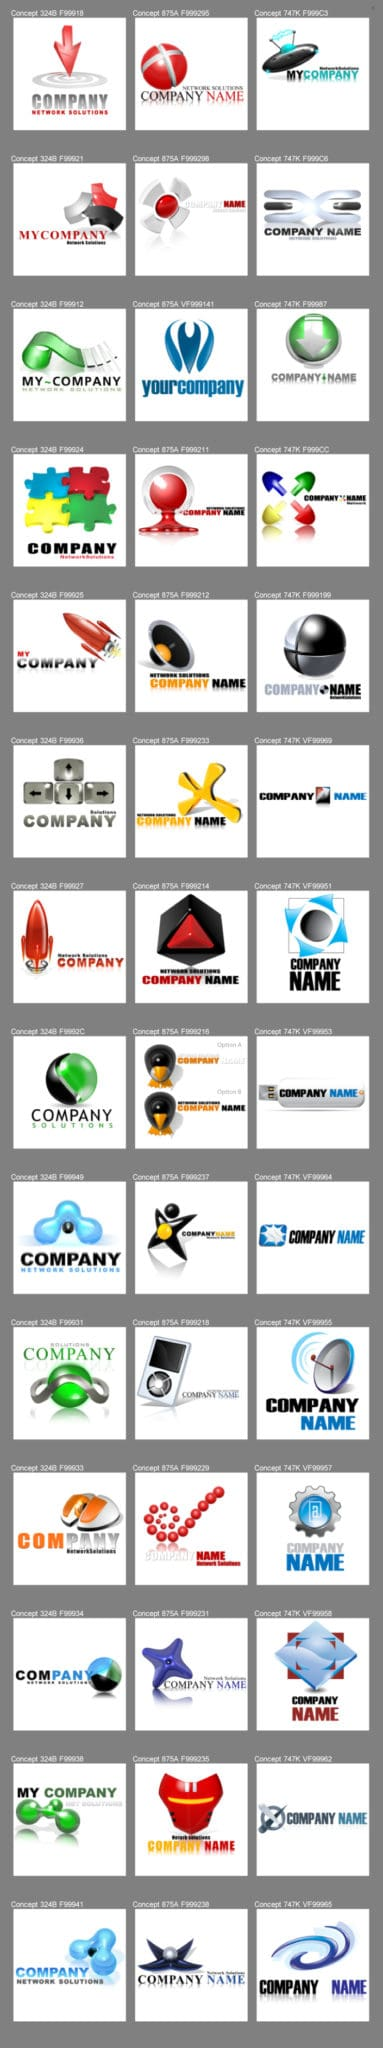 what kind of logos get the most attention